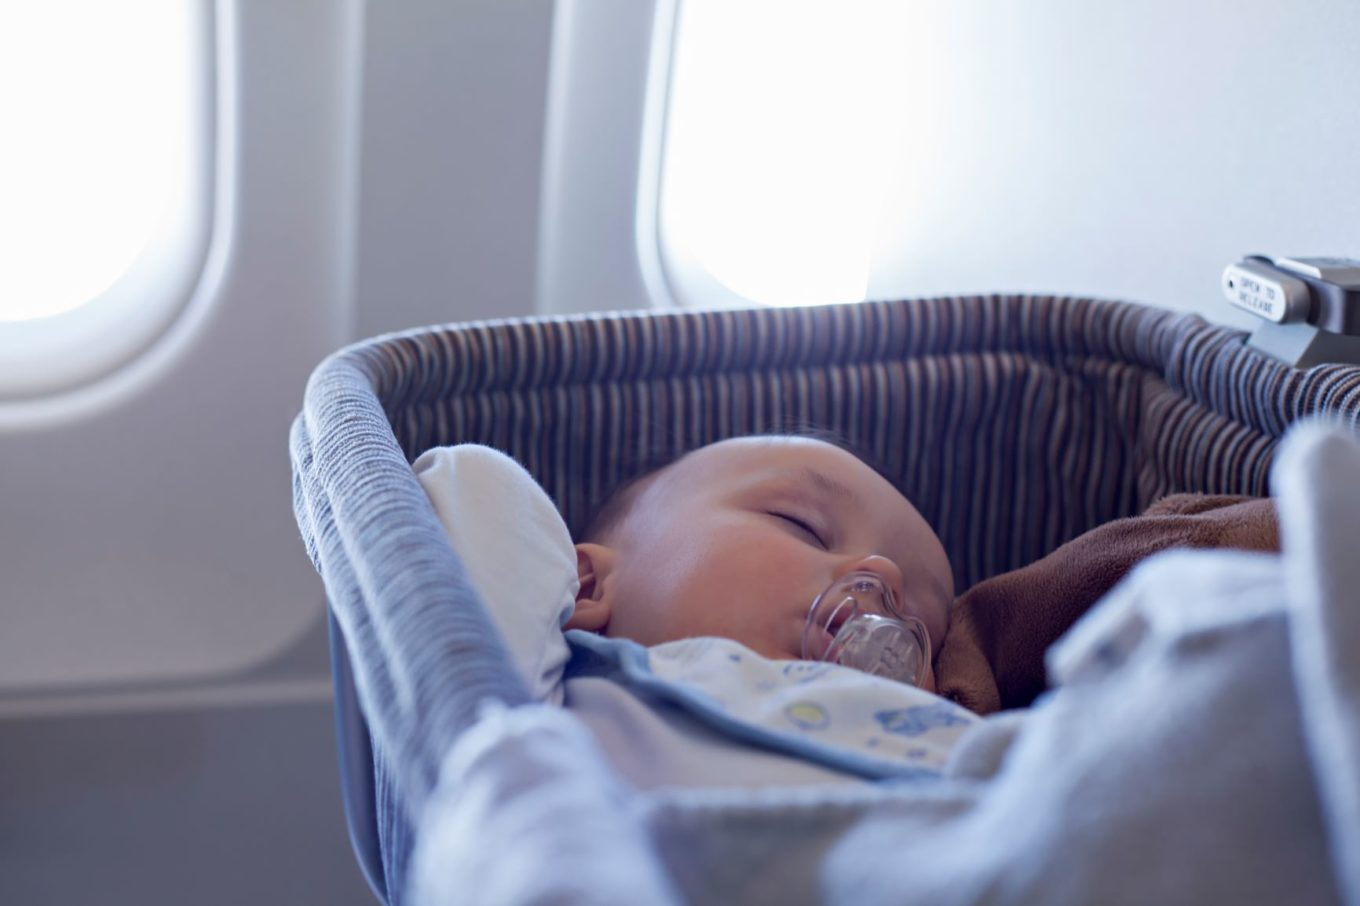 Baby in a bassinet on a plane